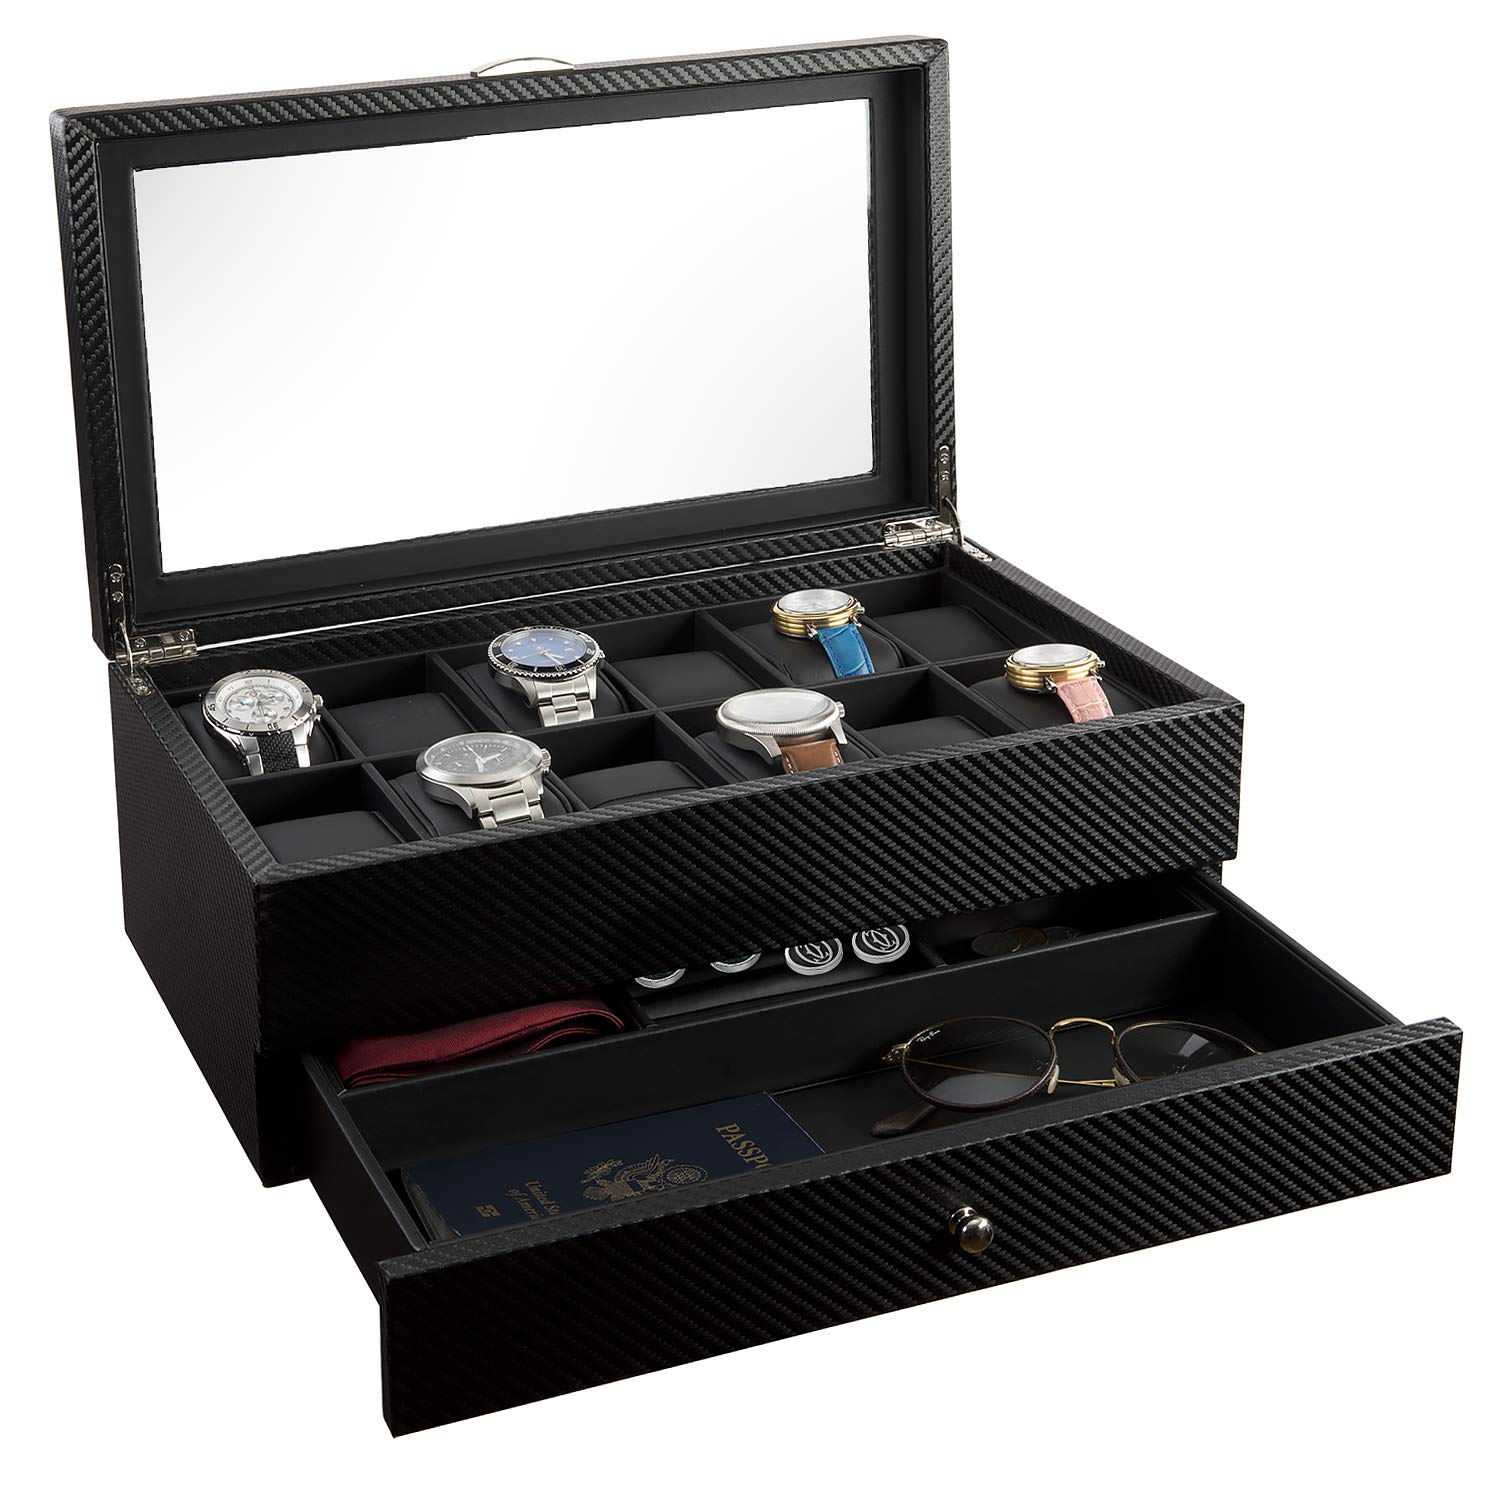 Watch Box- Display Case & Organizer for Men| First-Class Jewelry Watch Holder| 12 Watch Slots & Valet Drawer for Sunglasses, Rings, Phone| Sleek Black Color, Glass Top, Carbon Fiber, Faux Leather